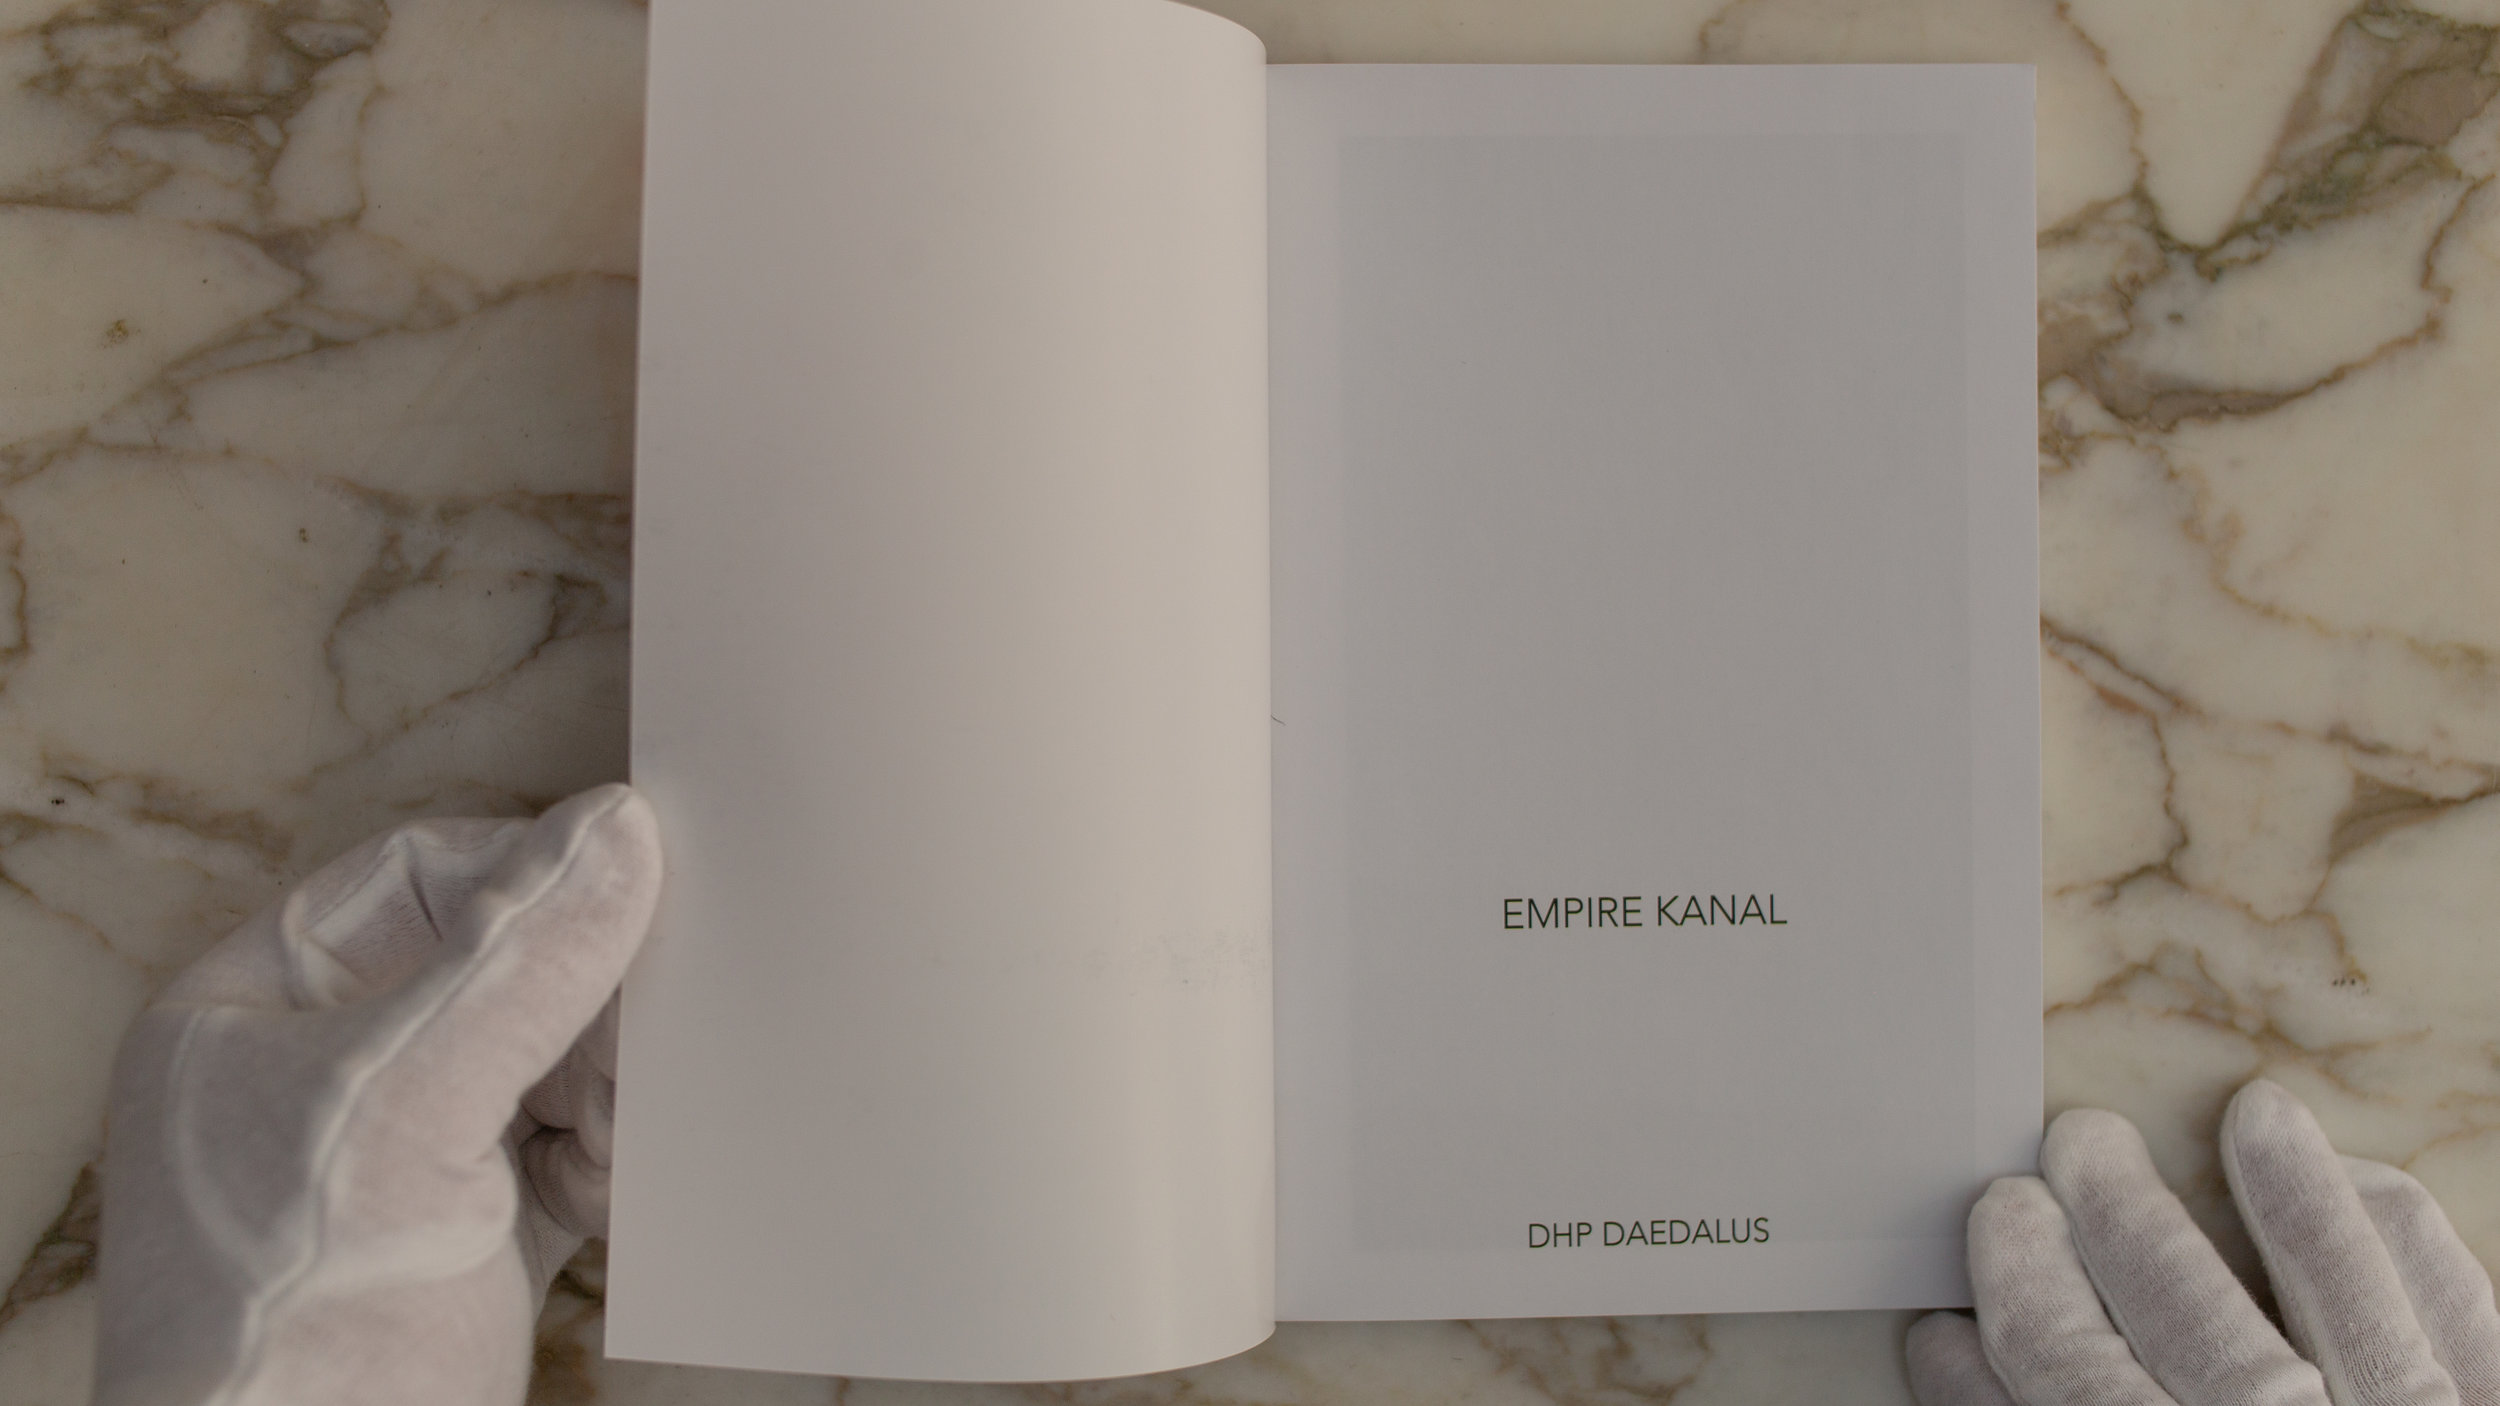 Empire Kanal book 12.jpg